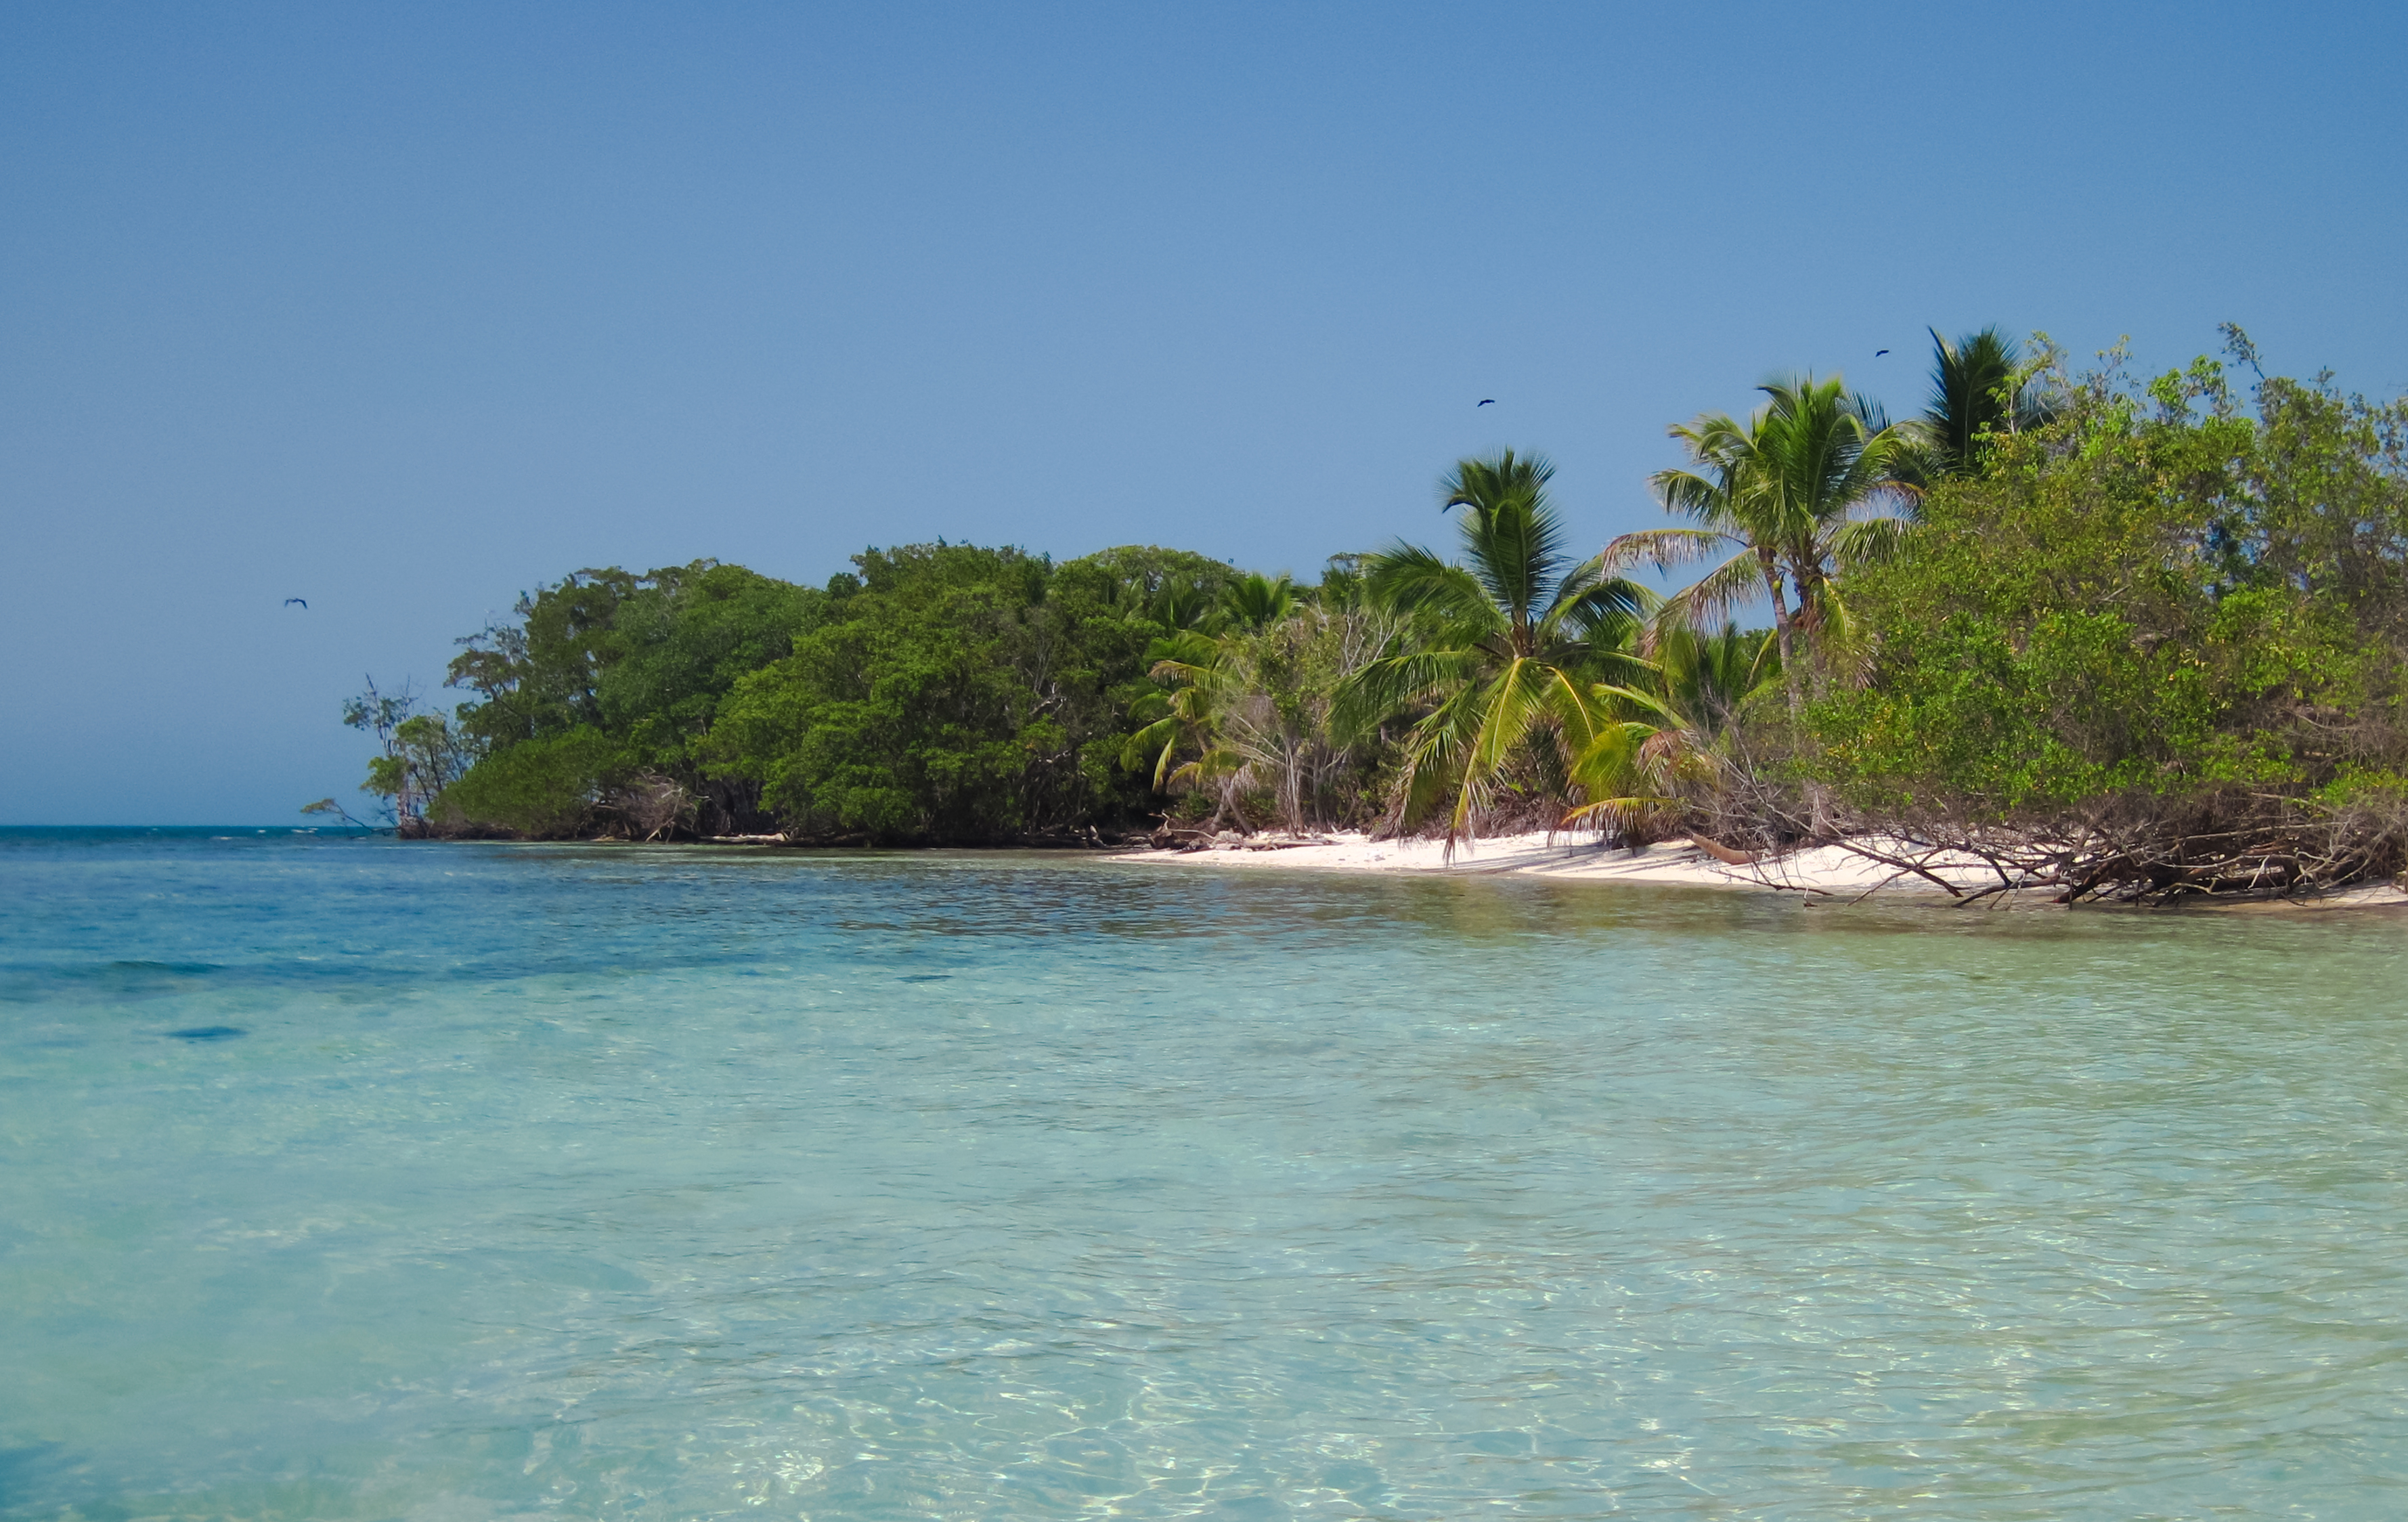 The Snake Cayes in Belize | Belize Offshore Islands